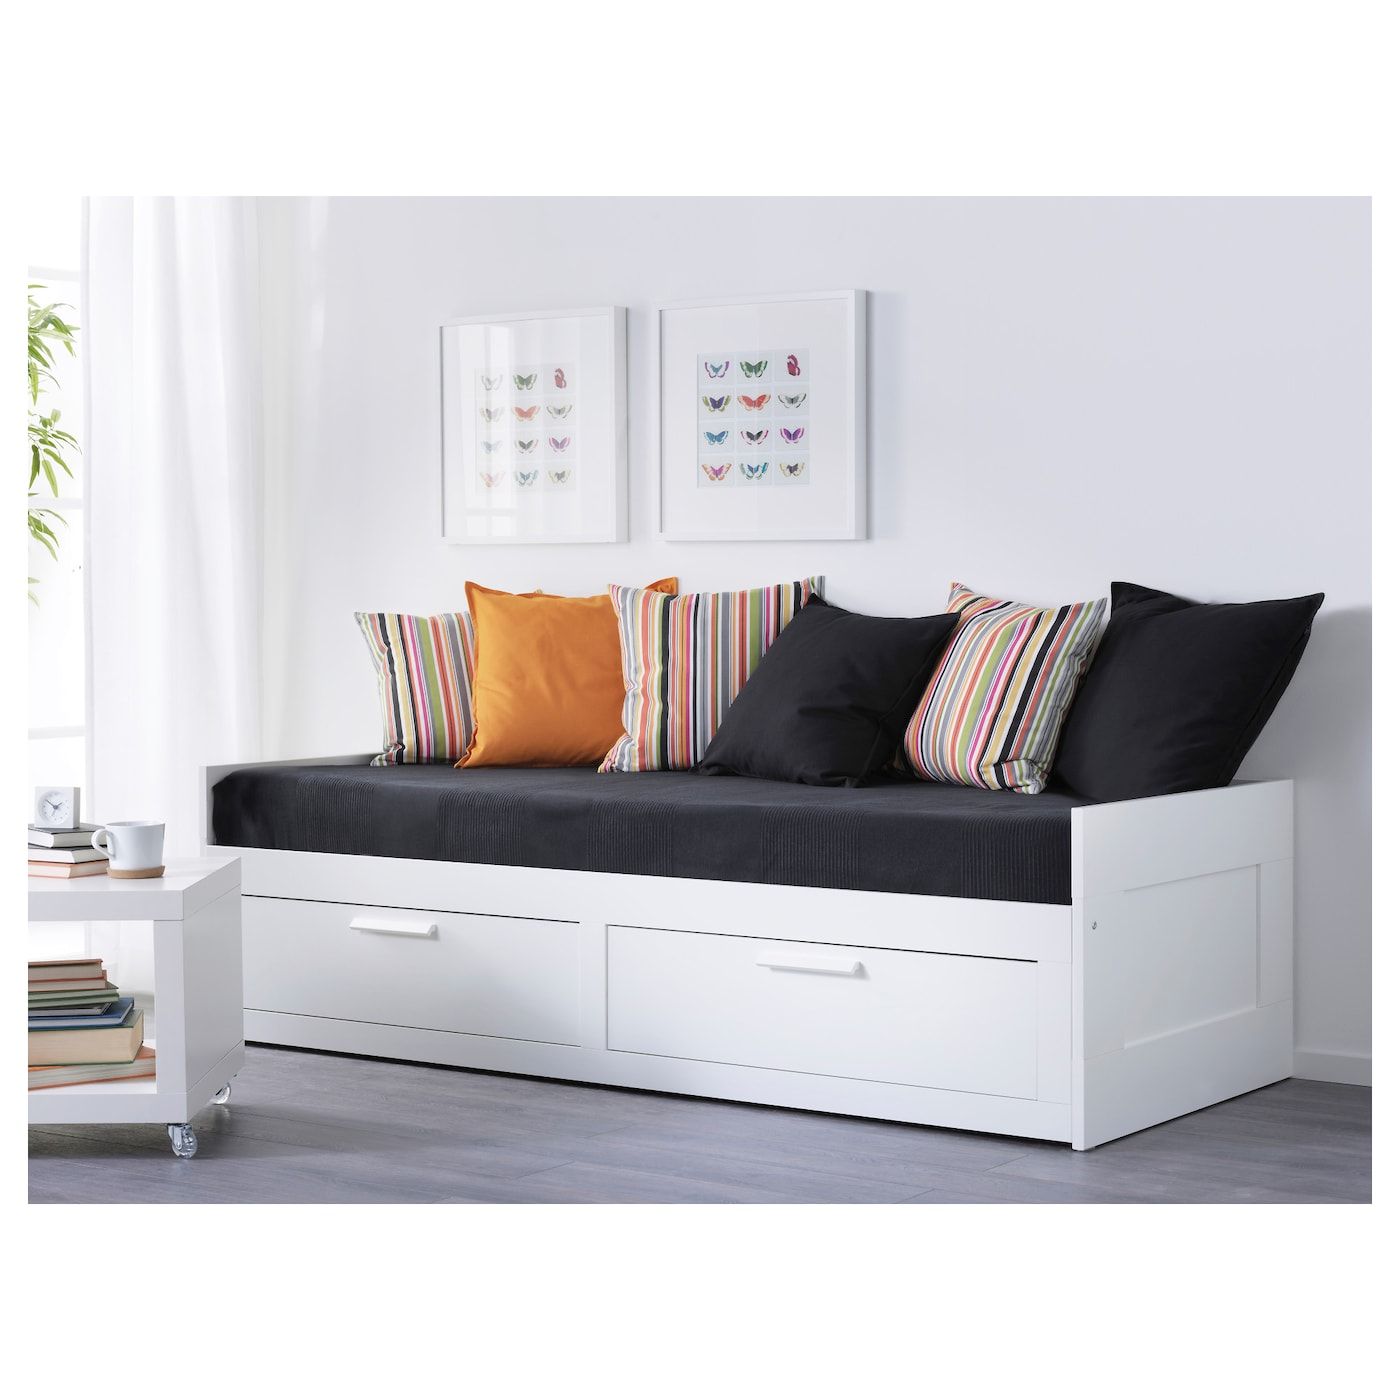 brimnes day bed w 2 drawers 2 mattresses white moshult. Black Bedroom Furniture Sets. Home Design Ideas